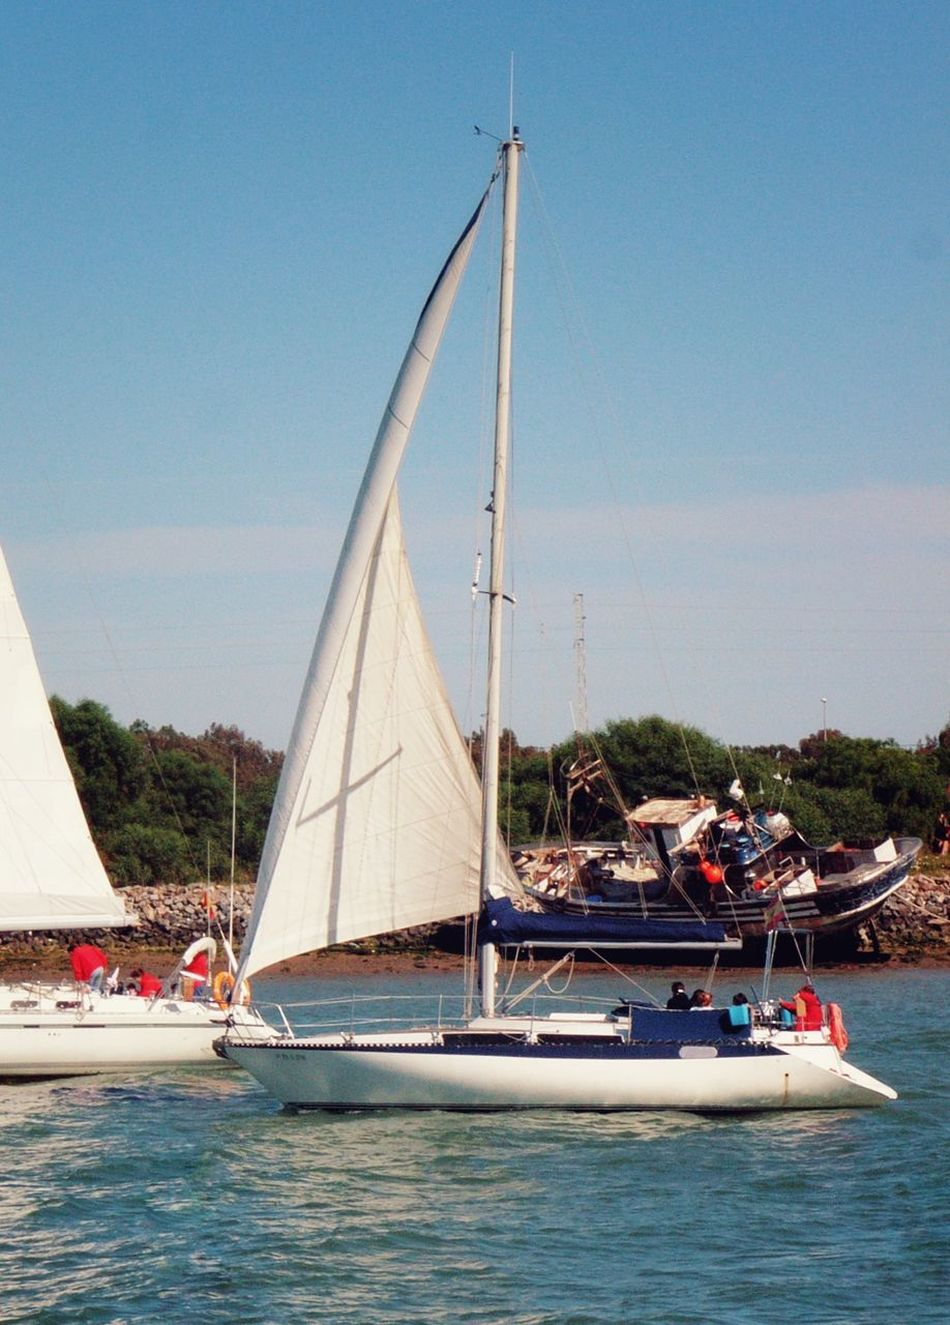 Nautical Vessel Sailboat Sea Water Sport Sports Race Yacht Competition People Summer Yachting Regatta Sailing